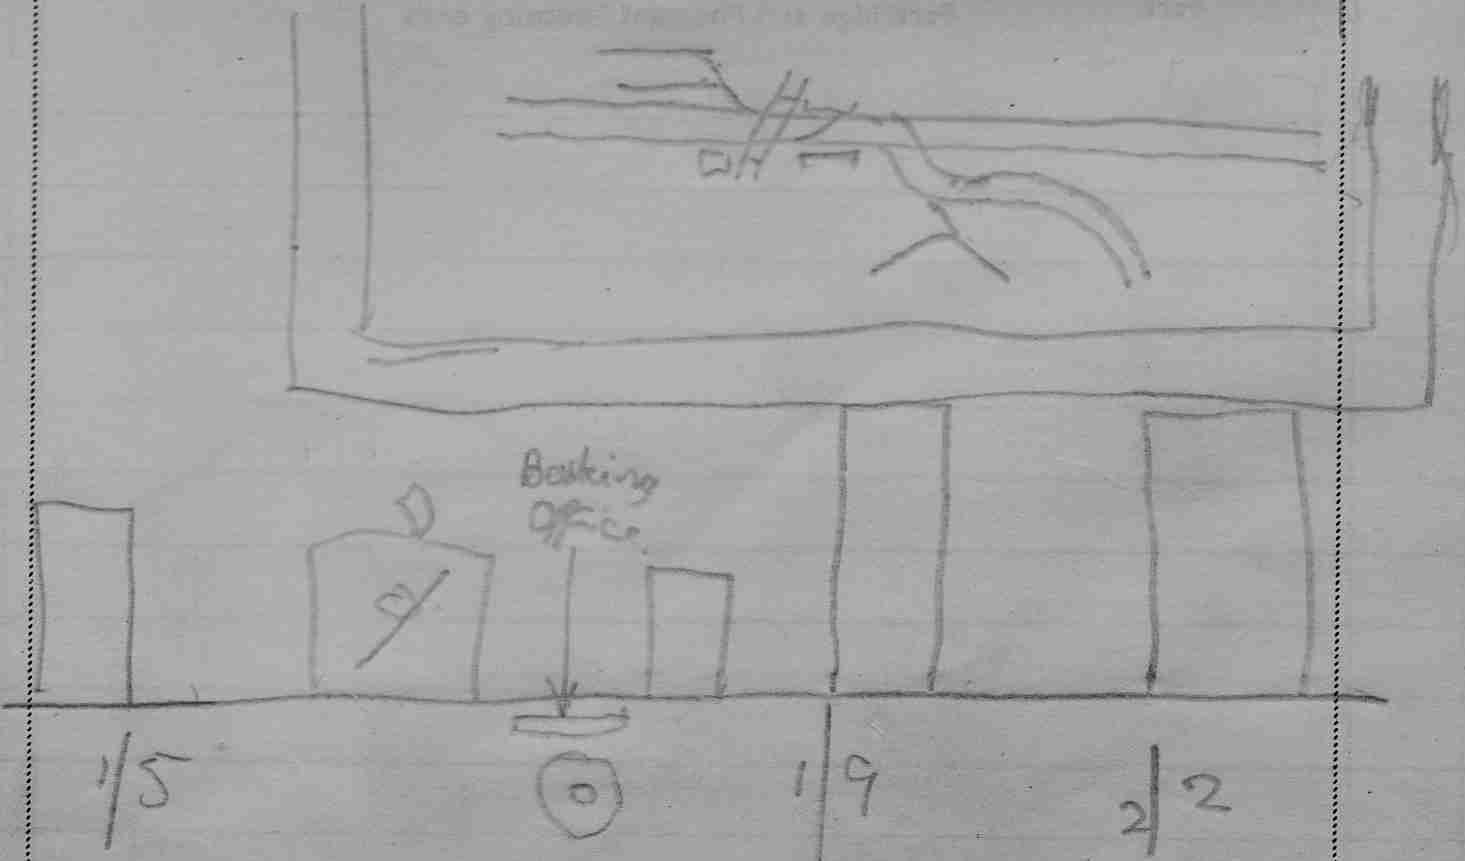 in diagram 7 below diagram 6 layout for roof level